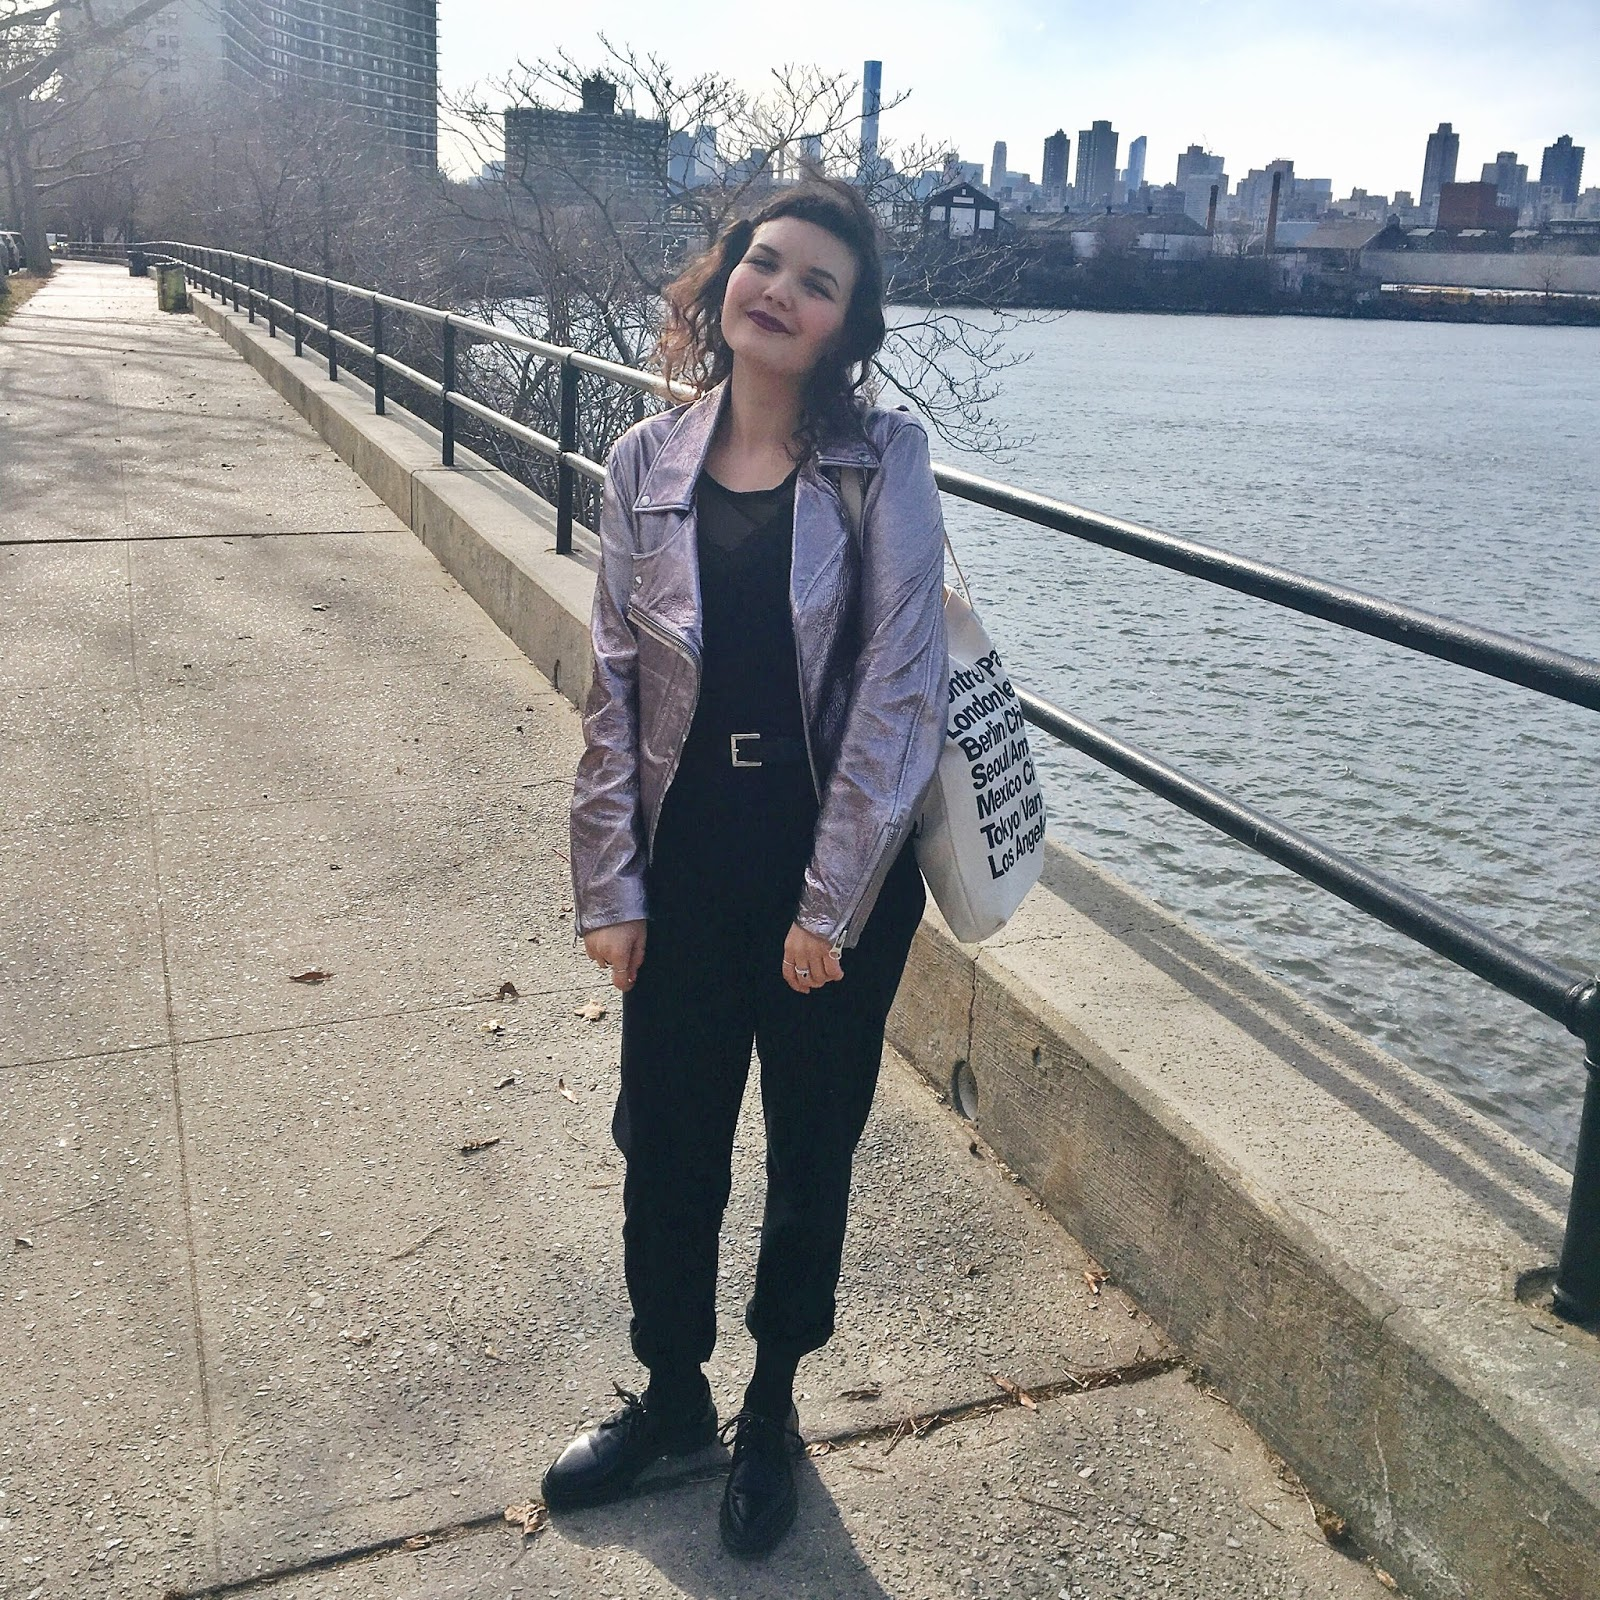 Astoria park, new york city, queens, mcq by alexander mcqueen gun metal leather biker jacket metallic finish, american apparel classic tote bag, brunette, fashion blogger, personal style blogger, brooklyn is burning